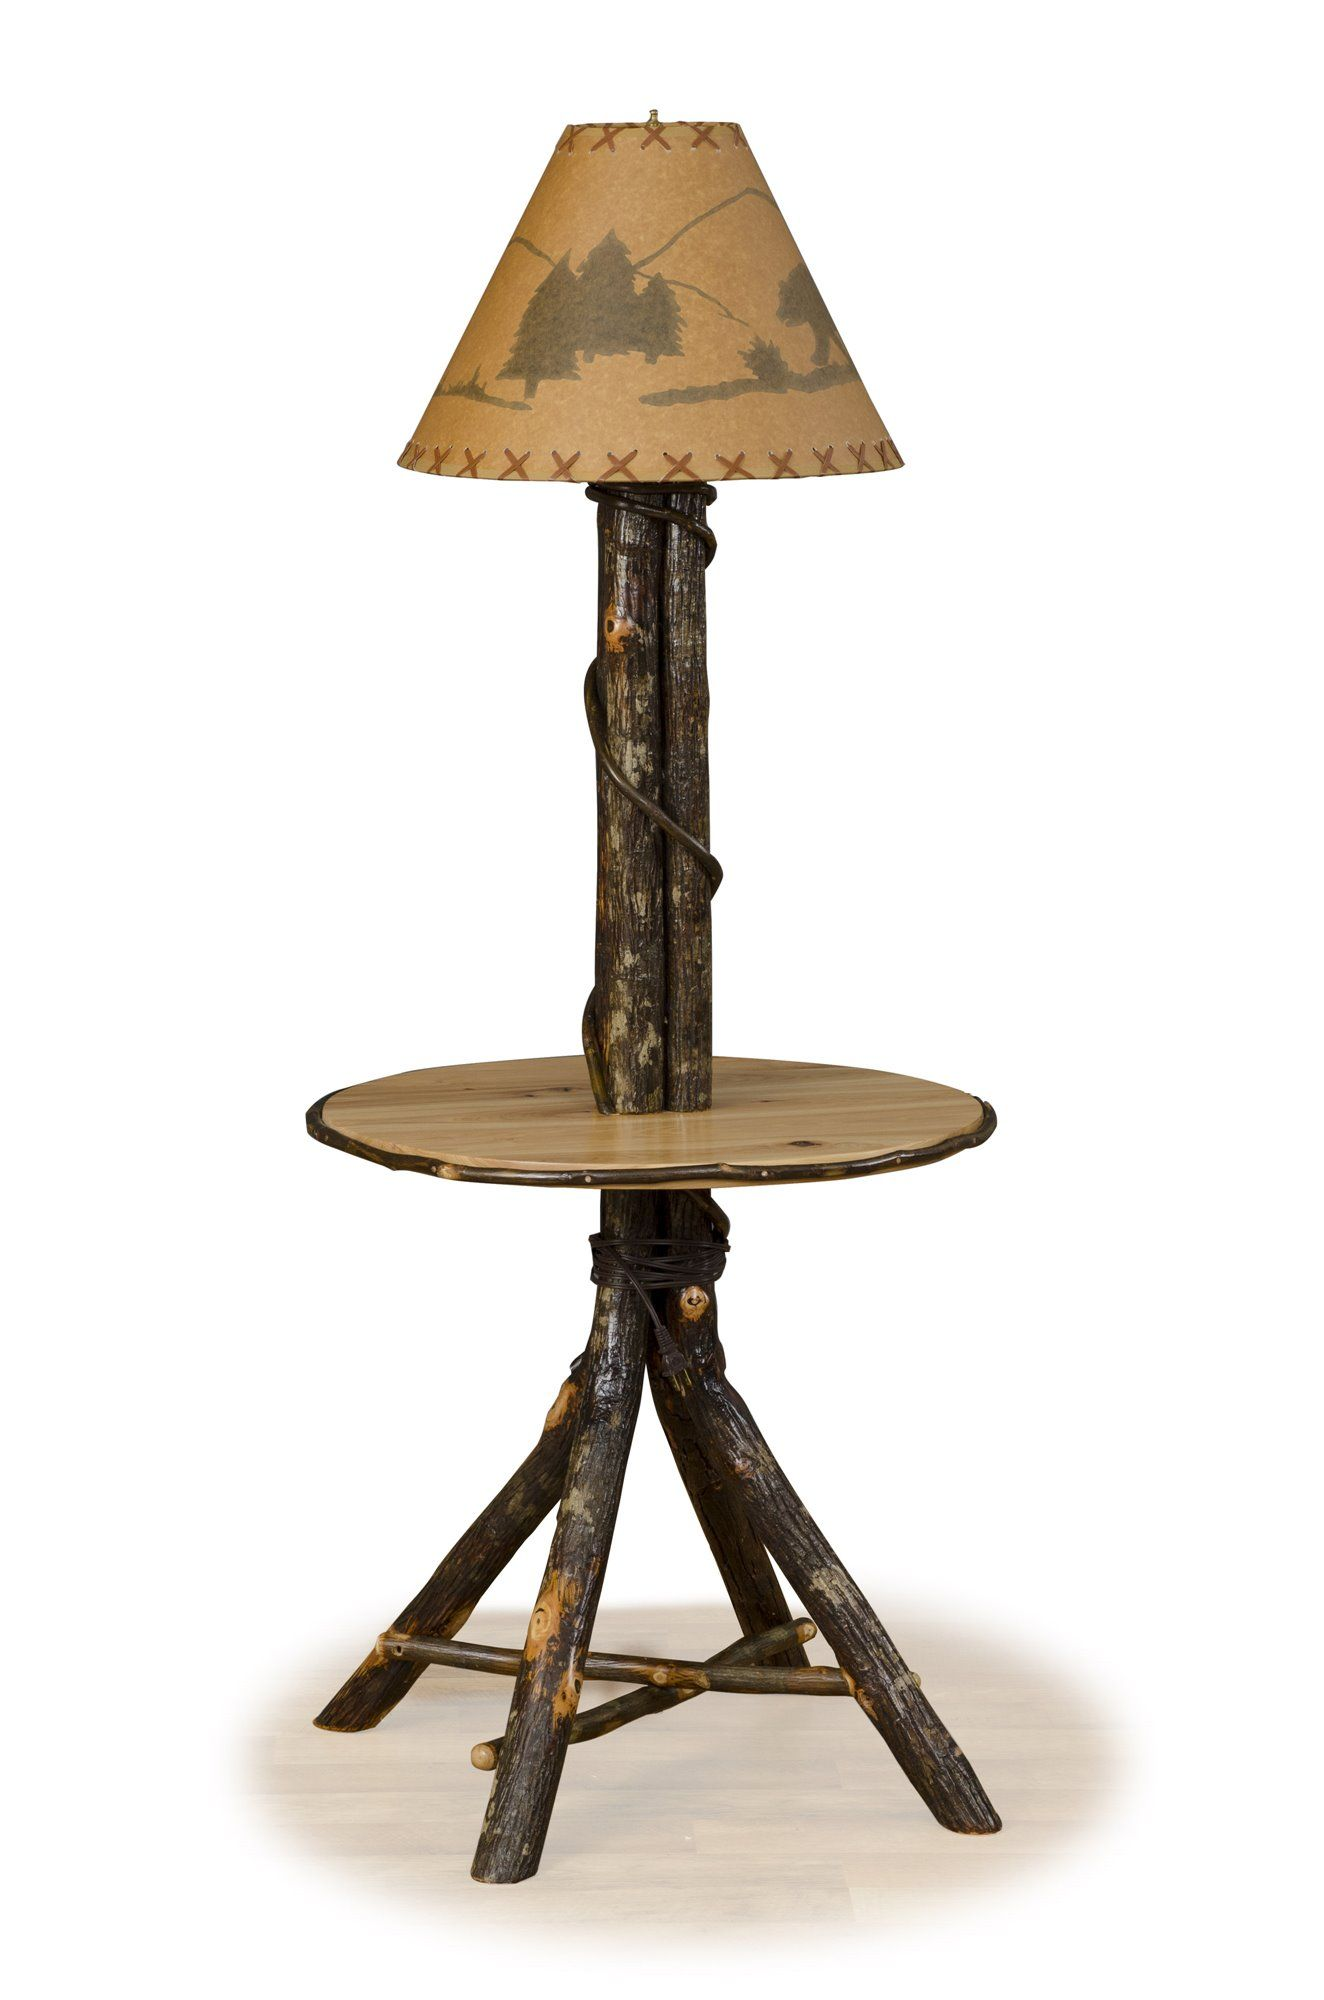 End table with built in lamp - Handcrafted Log Furniture Is Our Specialty This Log End Or Side Table Is Handcrafted From Natural Hickory Logs And Features A Built In Lamp